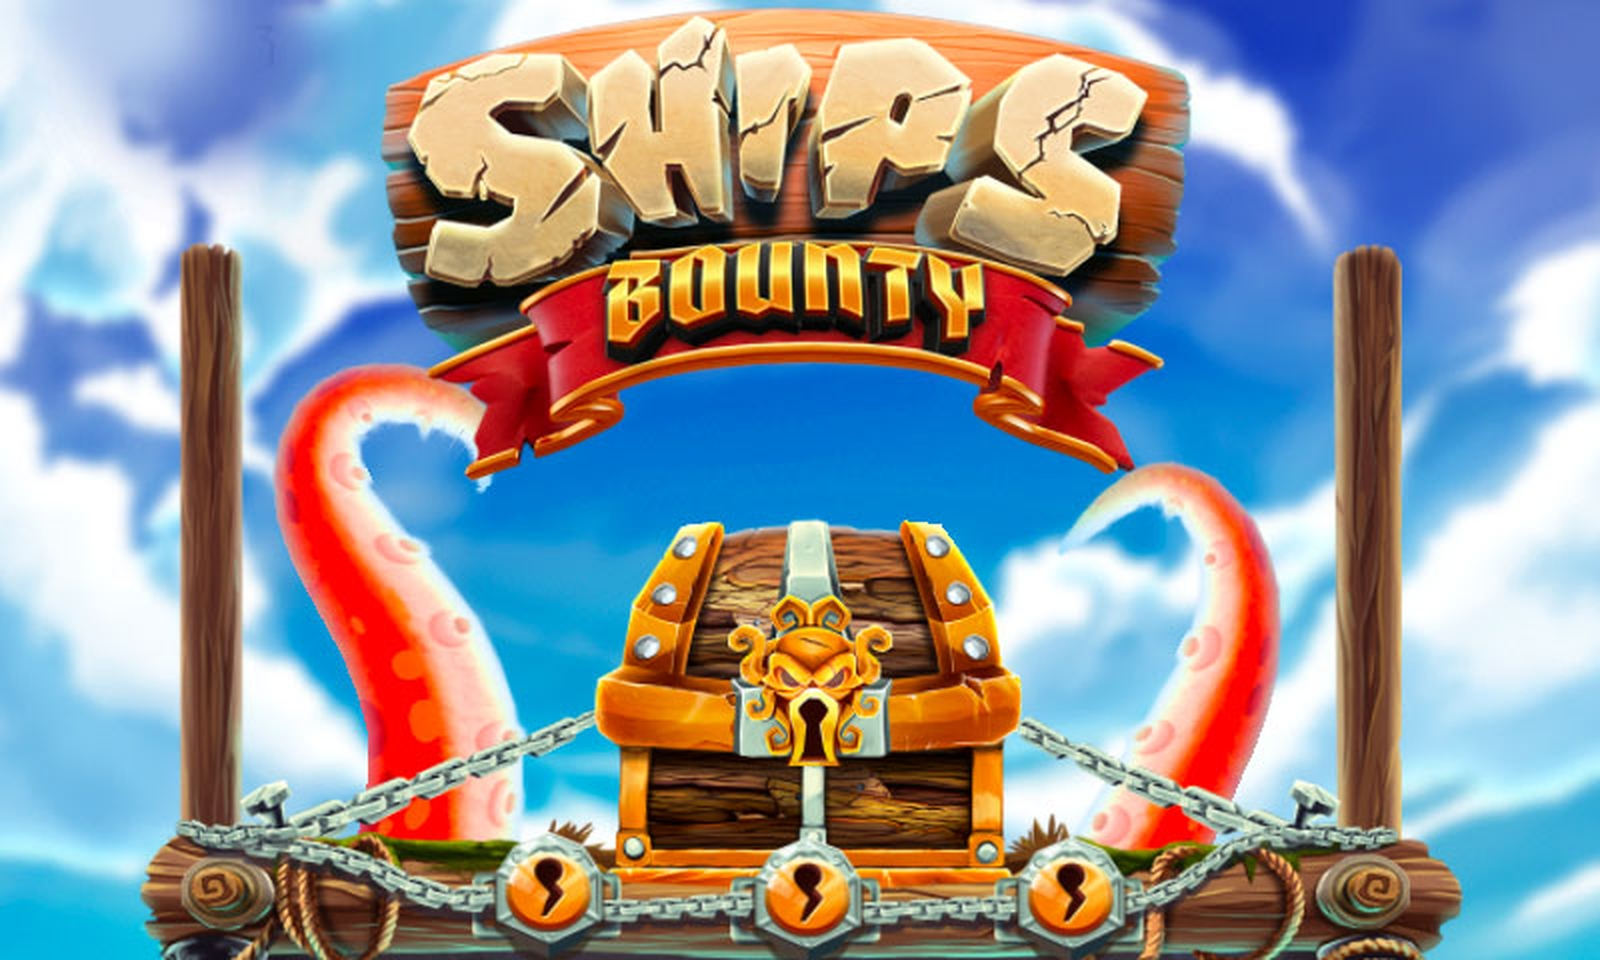 The Ships Bounty Online Slot Demo Game by Live 5 Gaming